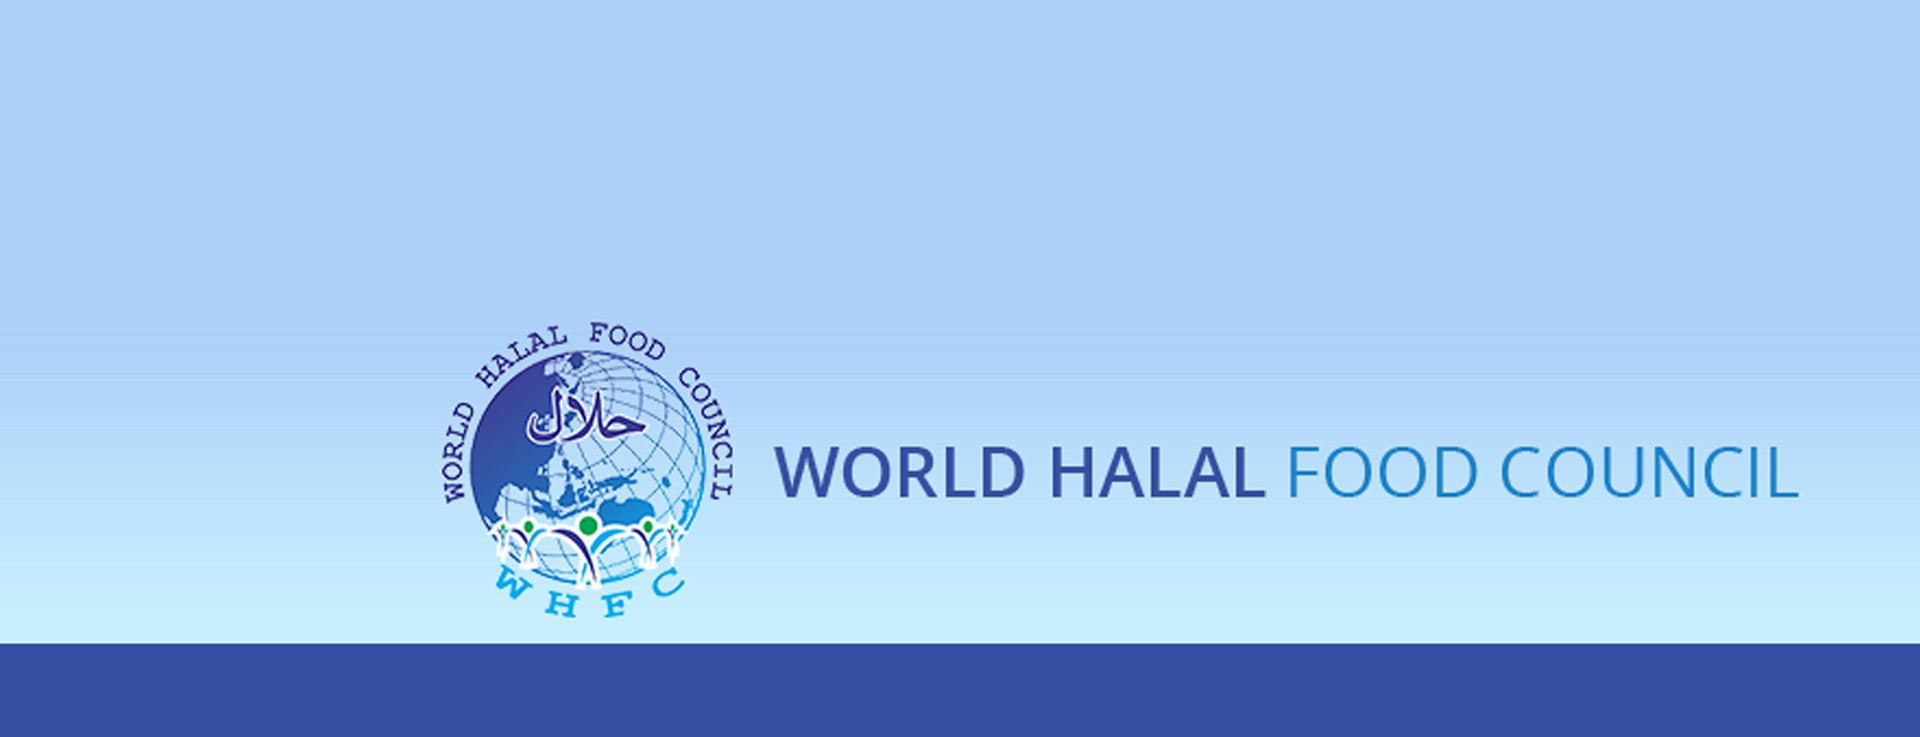 World Halal Food Council